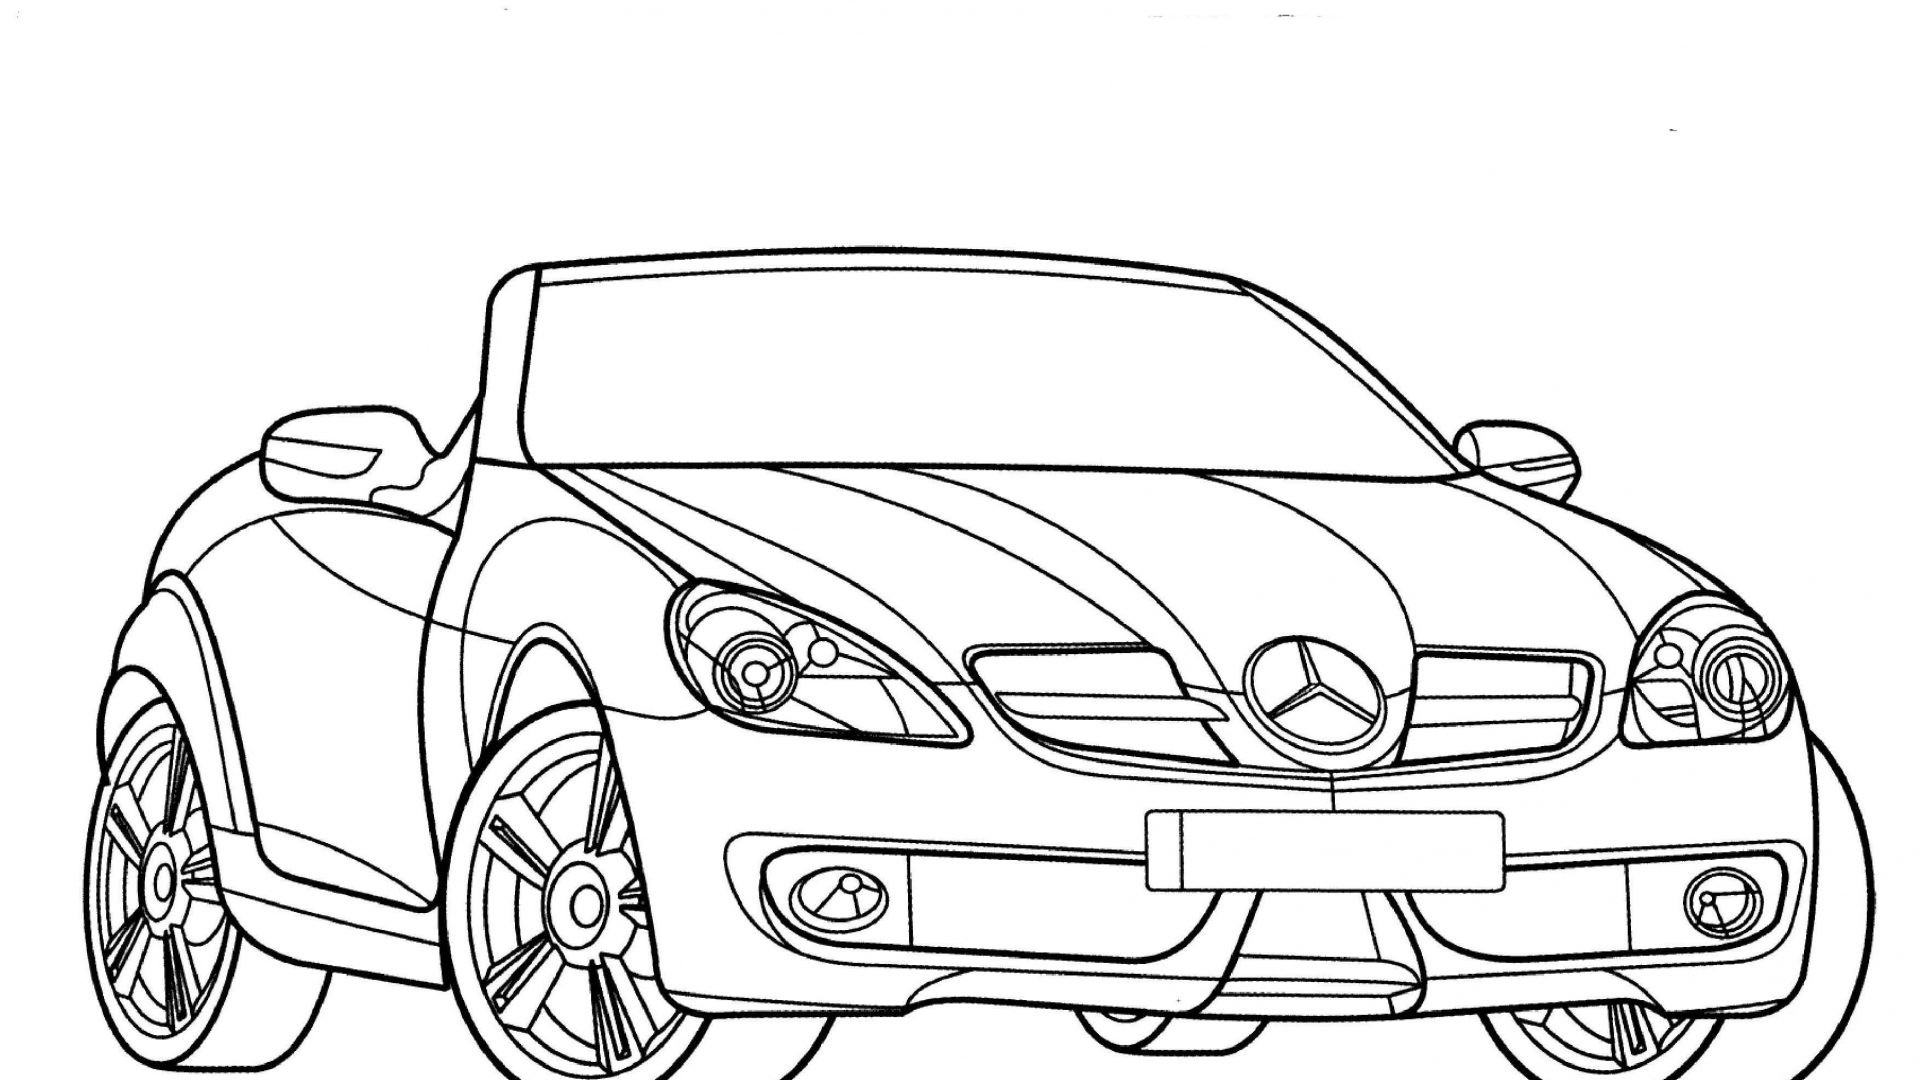 Mercedes Drawing At Getdrawings